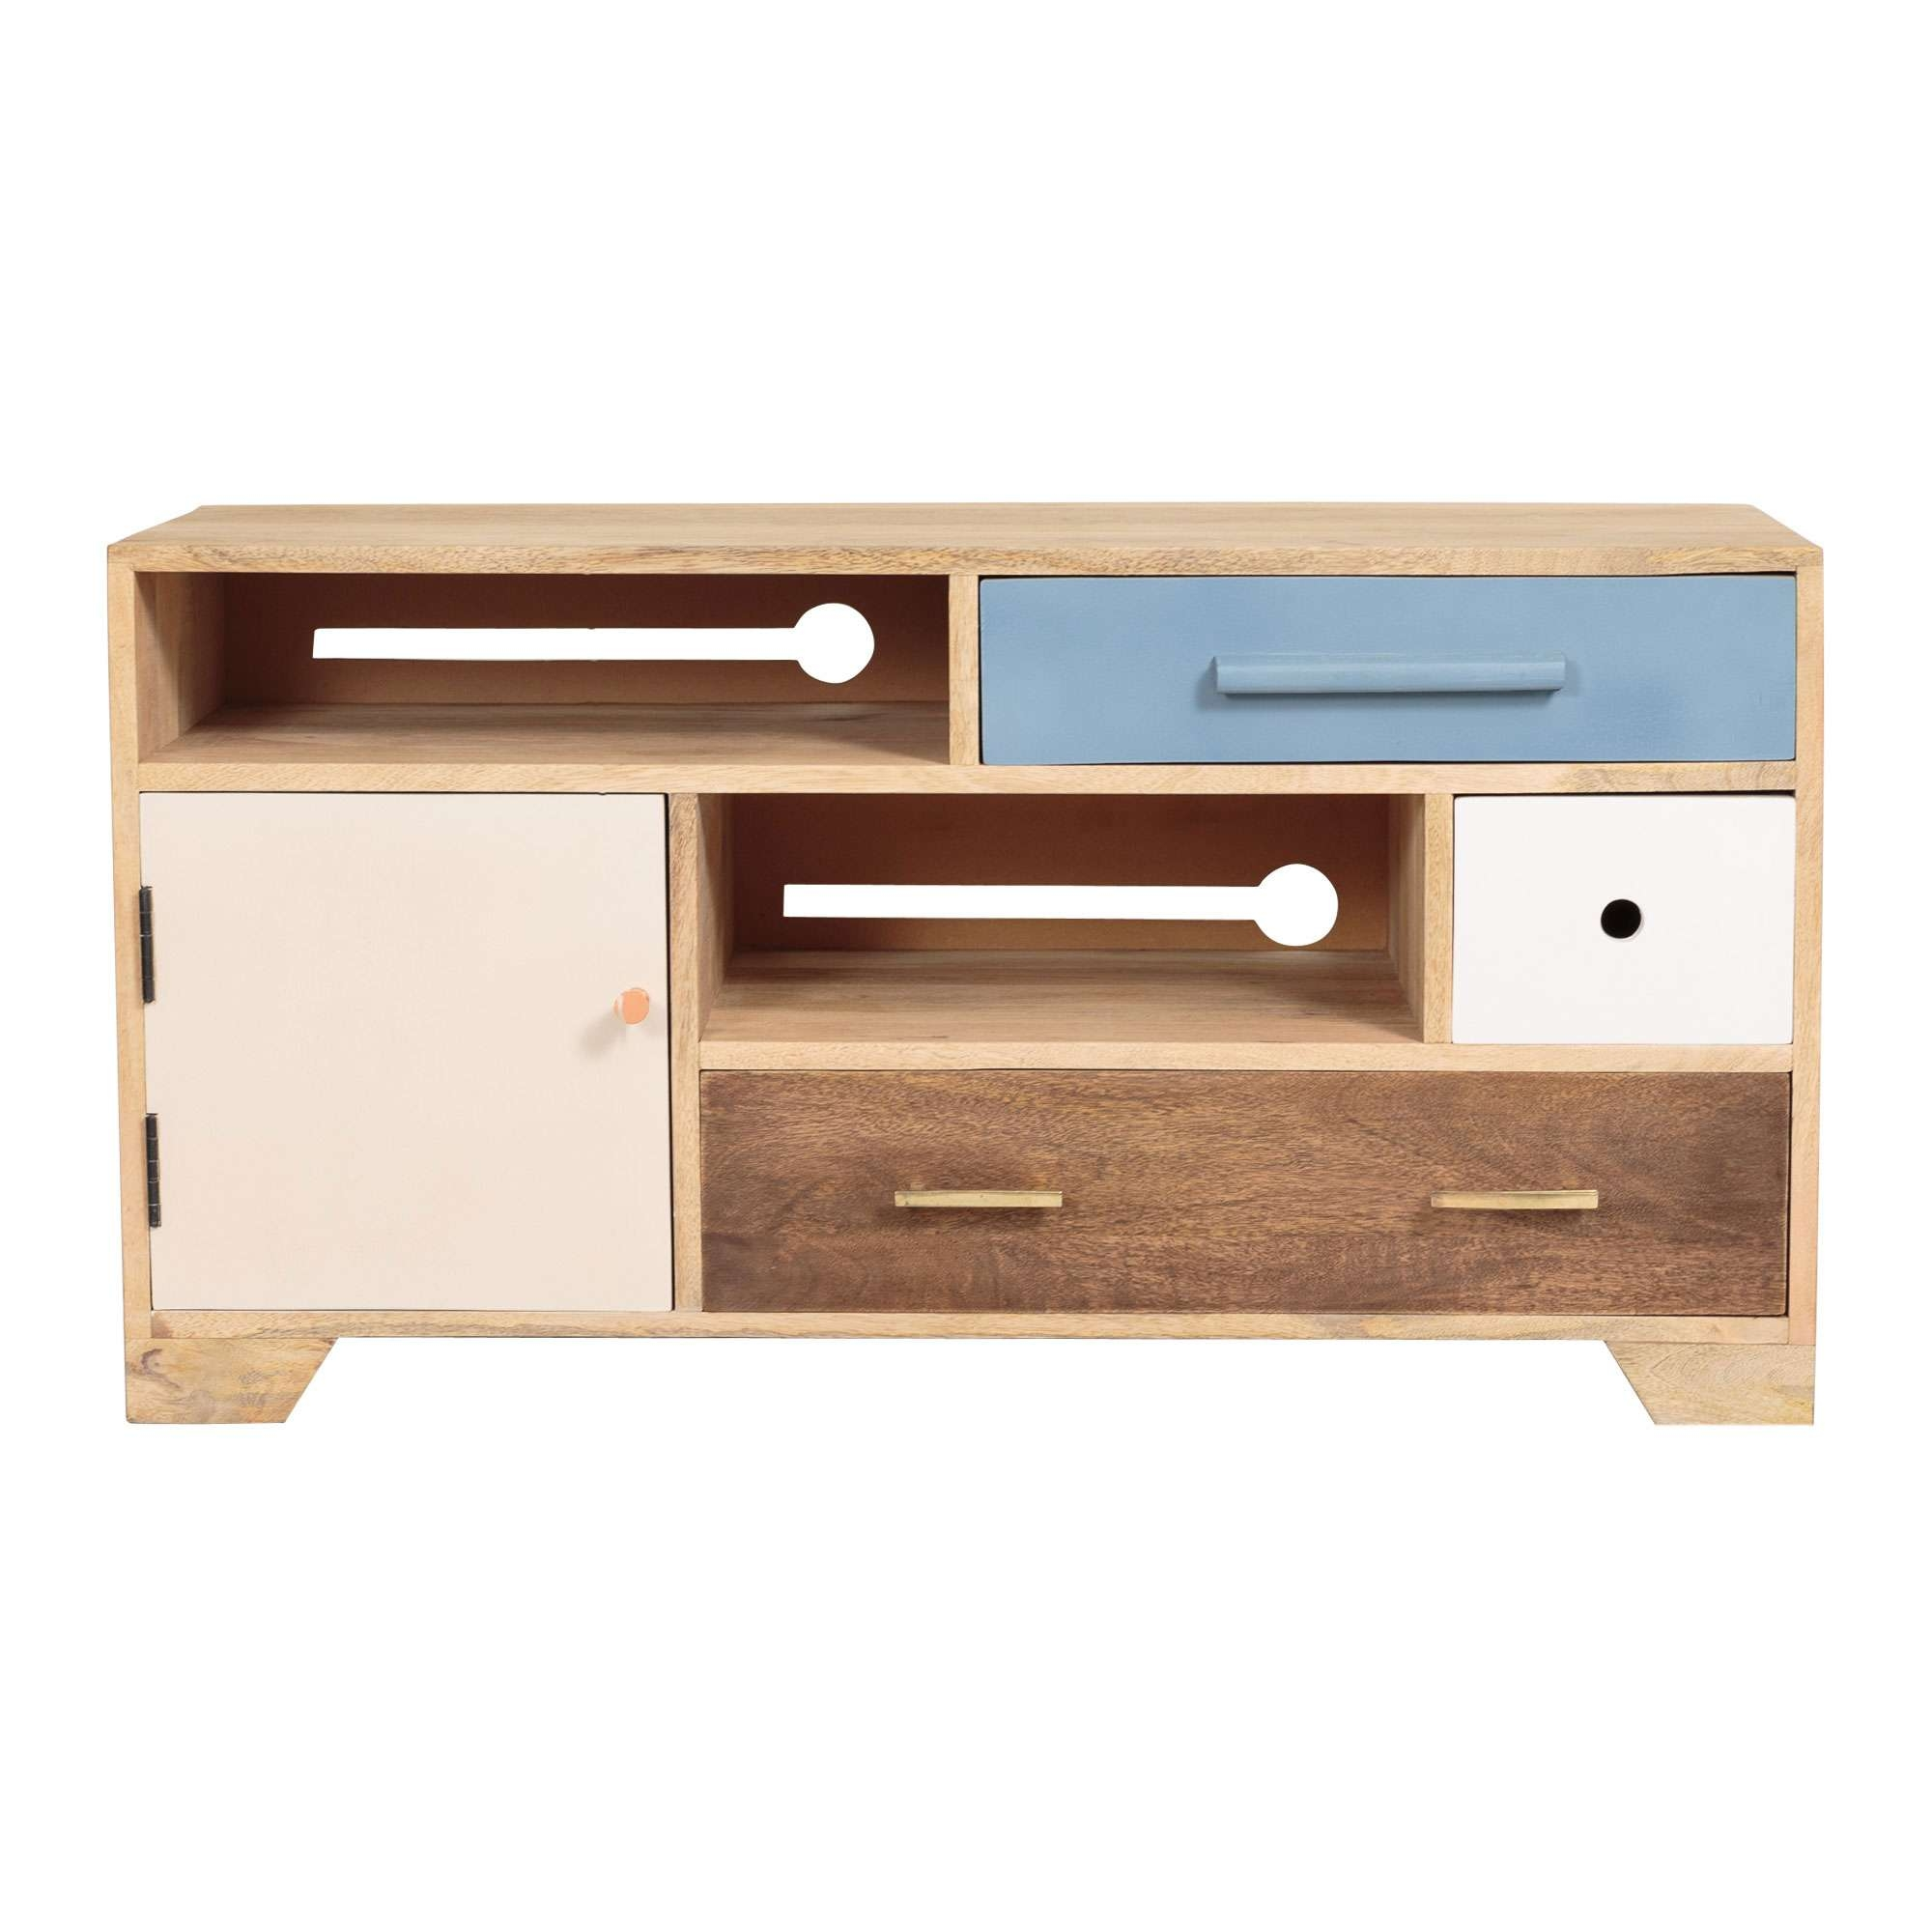 Jennifer Wooden Tv Cabinet | Oliver Bonas With Regard To Wooden Tv Cabinets (Gallery 5 of 20)